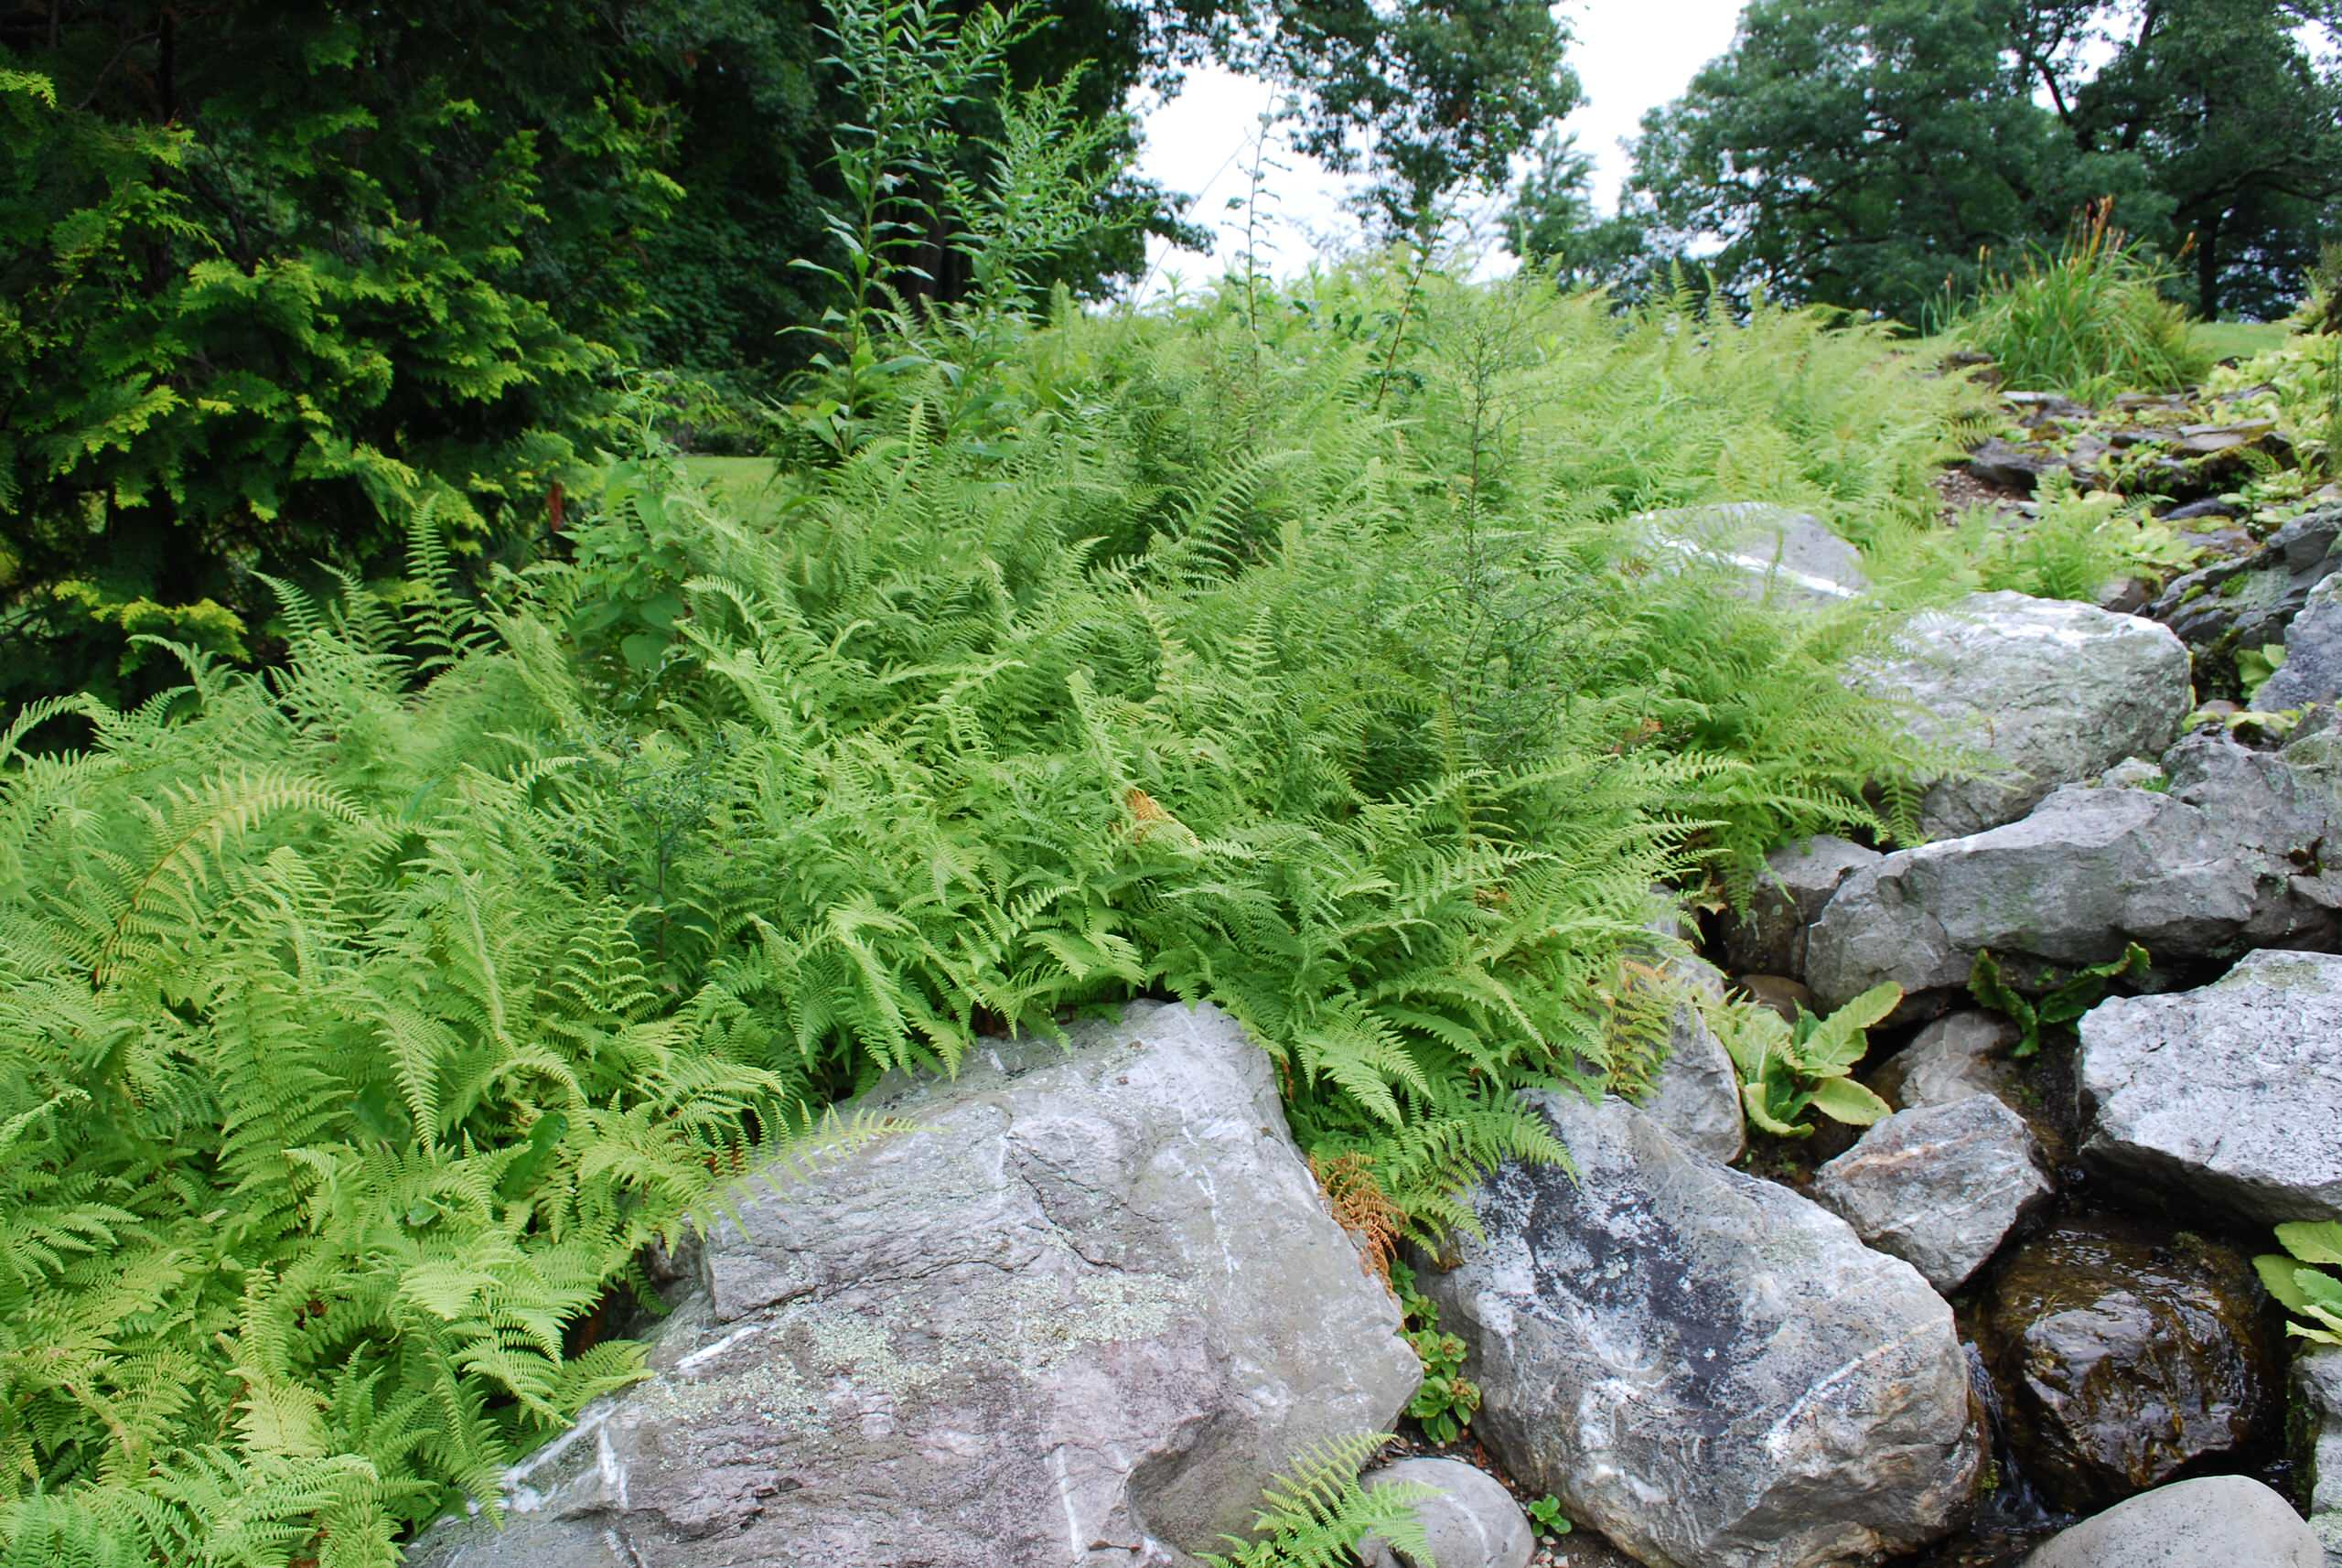 Hayscented Ferns and Boulders at Innisfree, NY